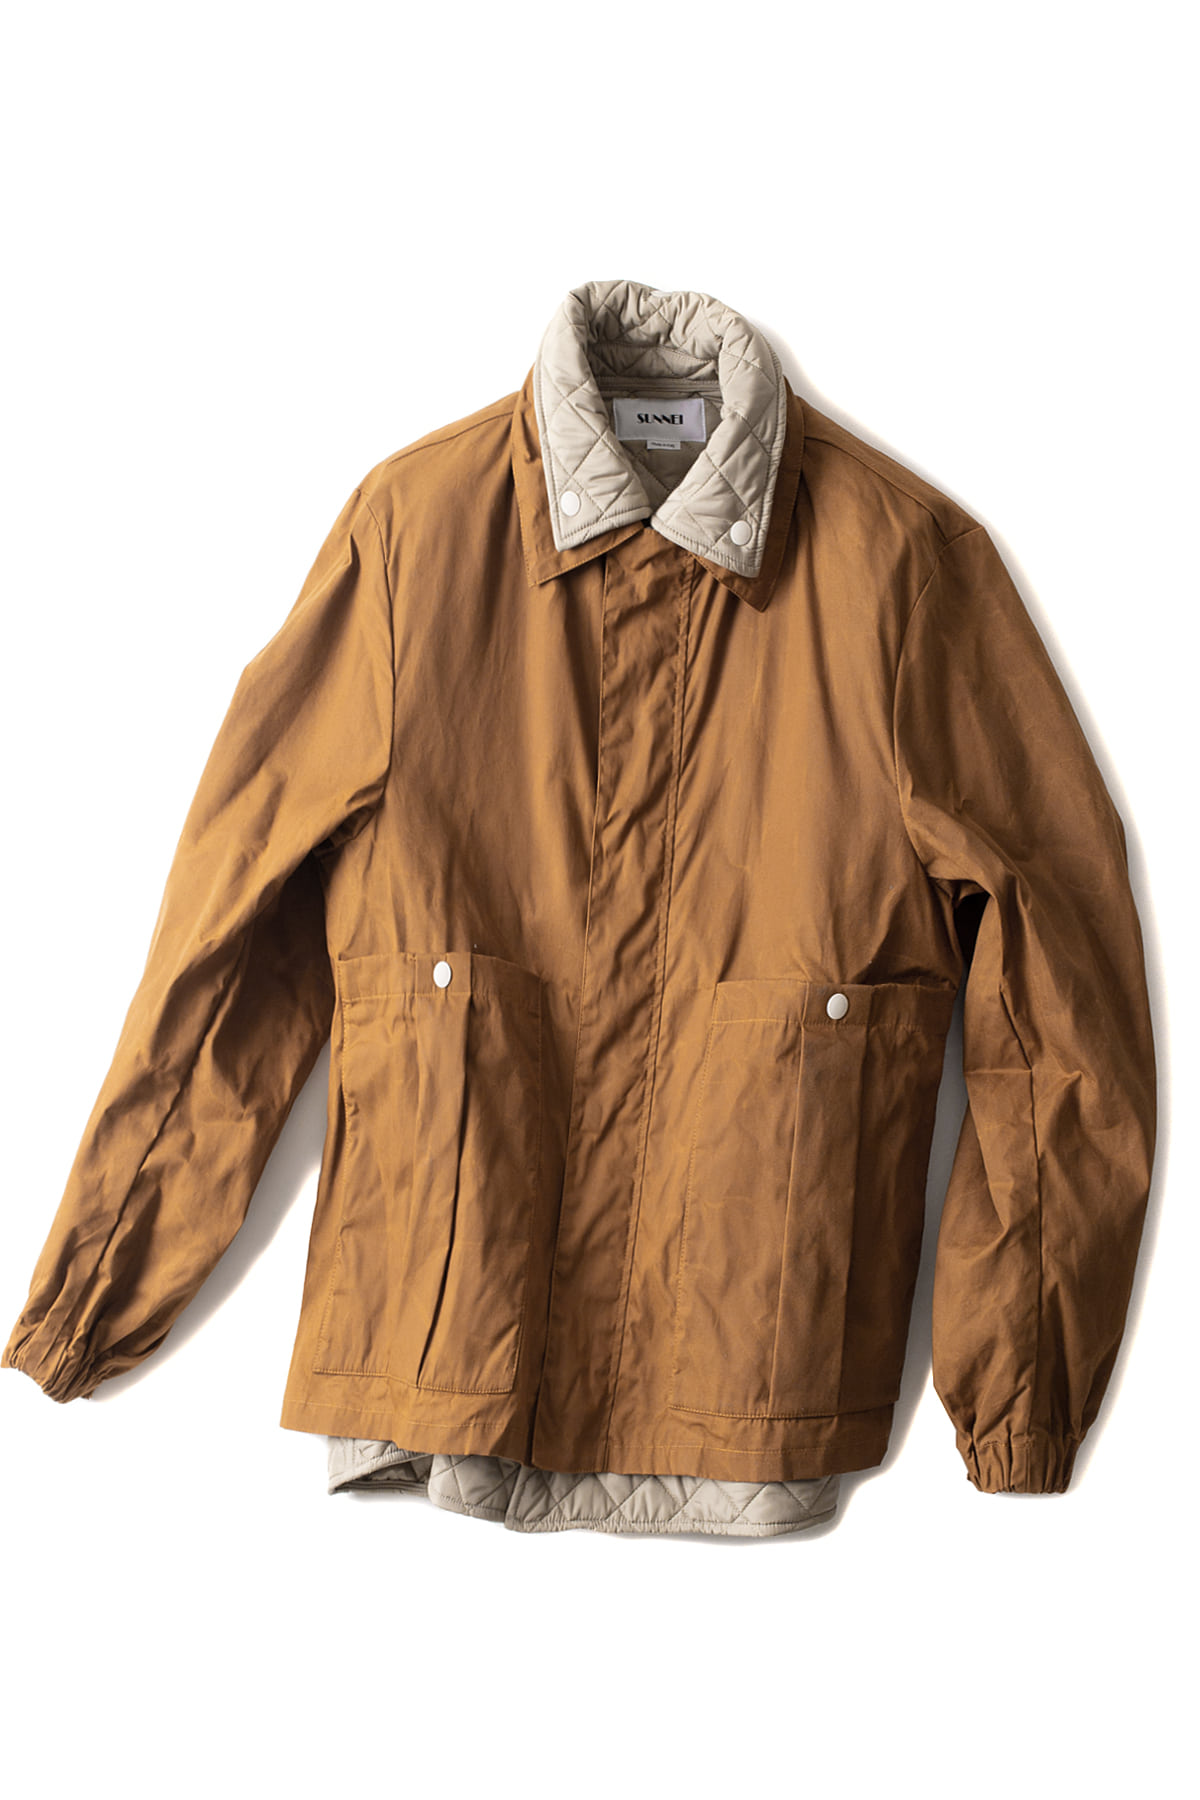 SUNNEI : Double Jacket (Brown)